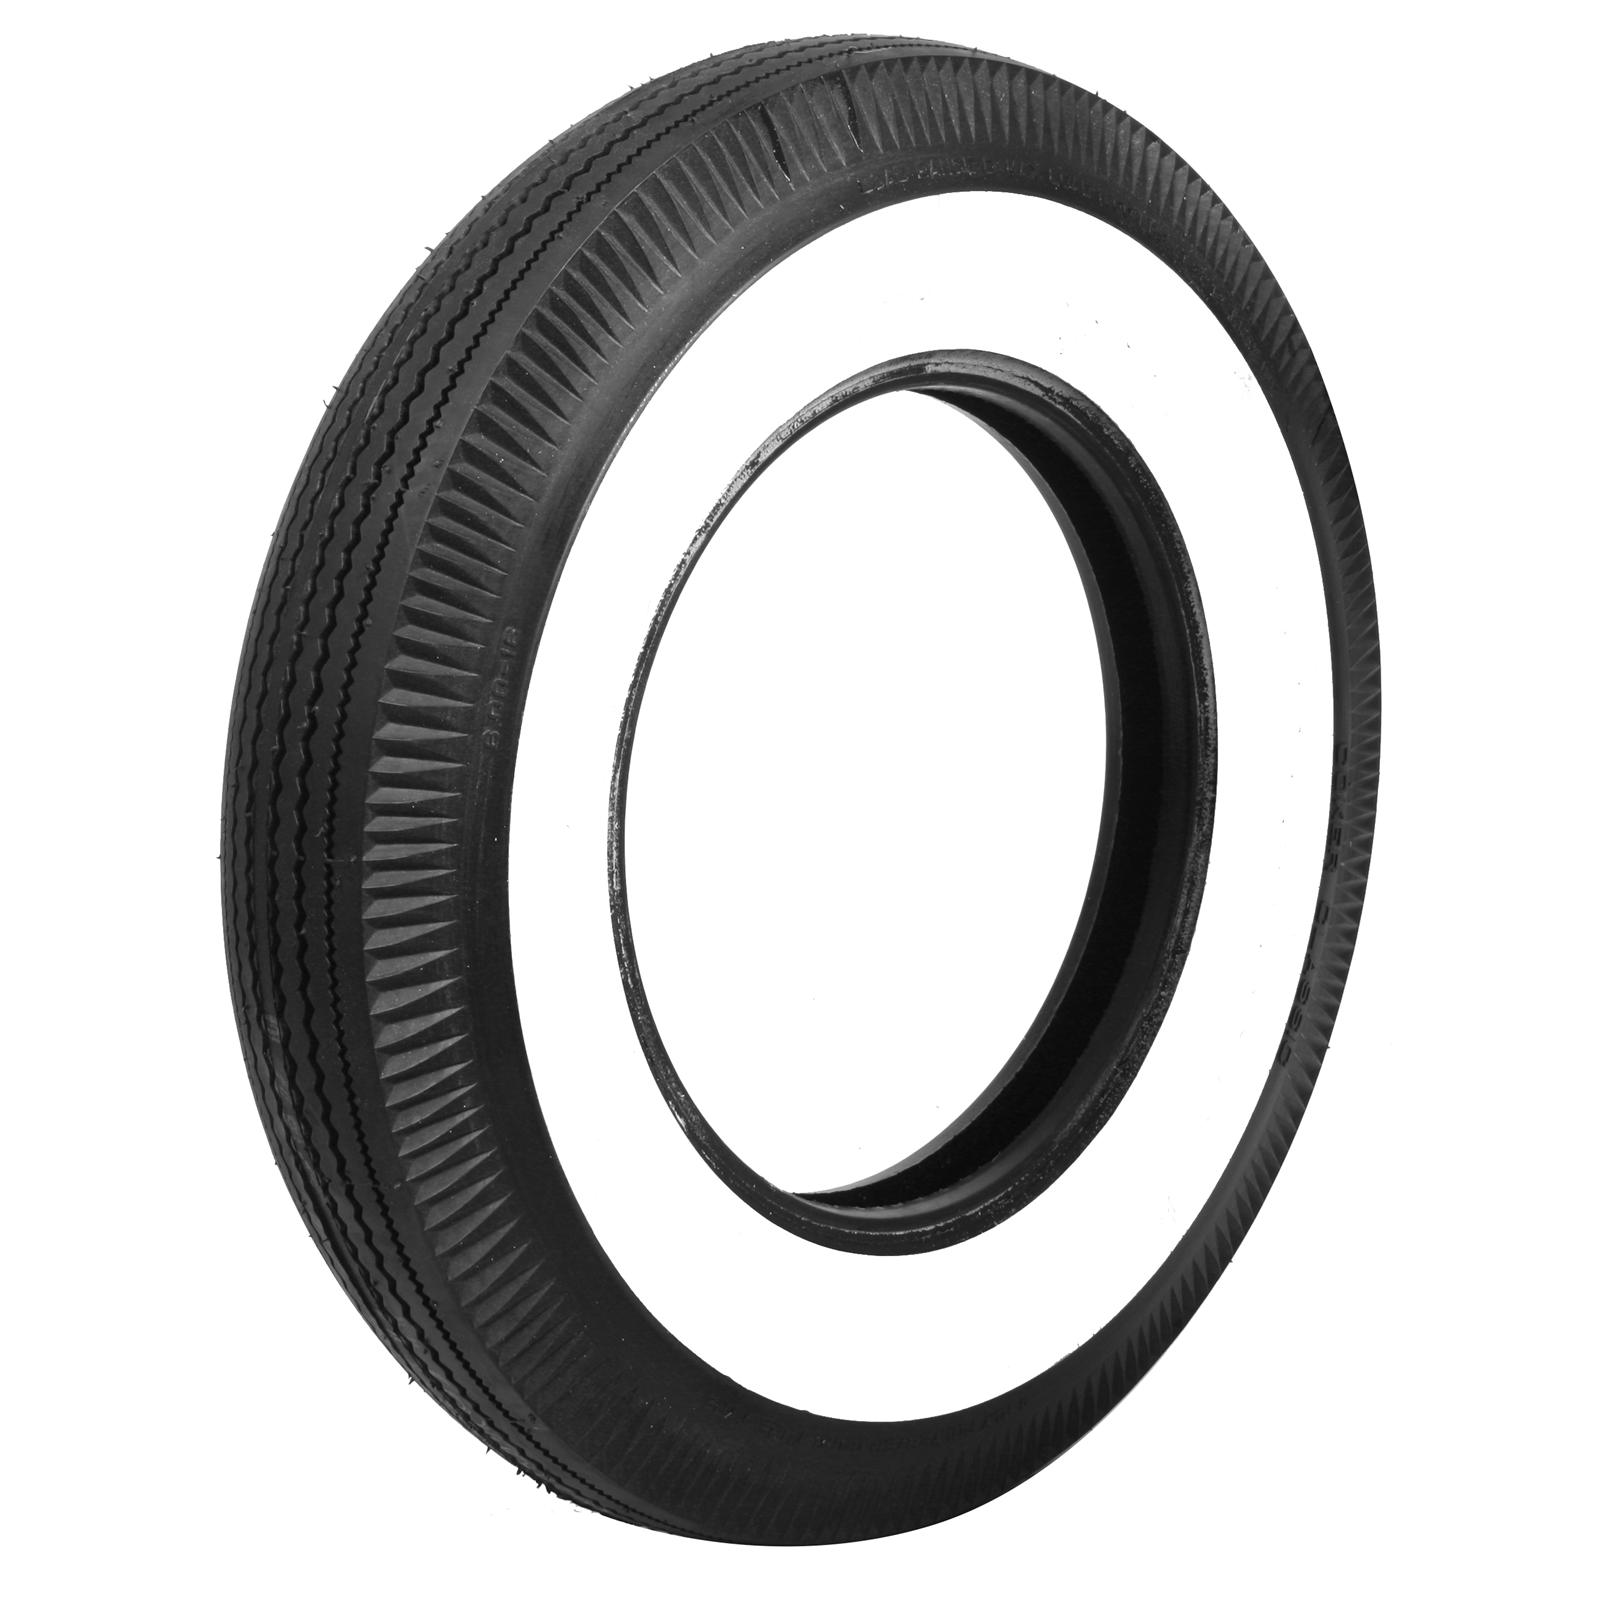 Bias Ply Tires >> Details About Set Of 4 Coker Classic Bias Ply Tire 6 00 16 Bias Ply 3 0 In Whitewall 65500